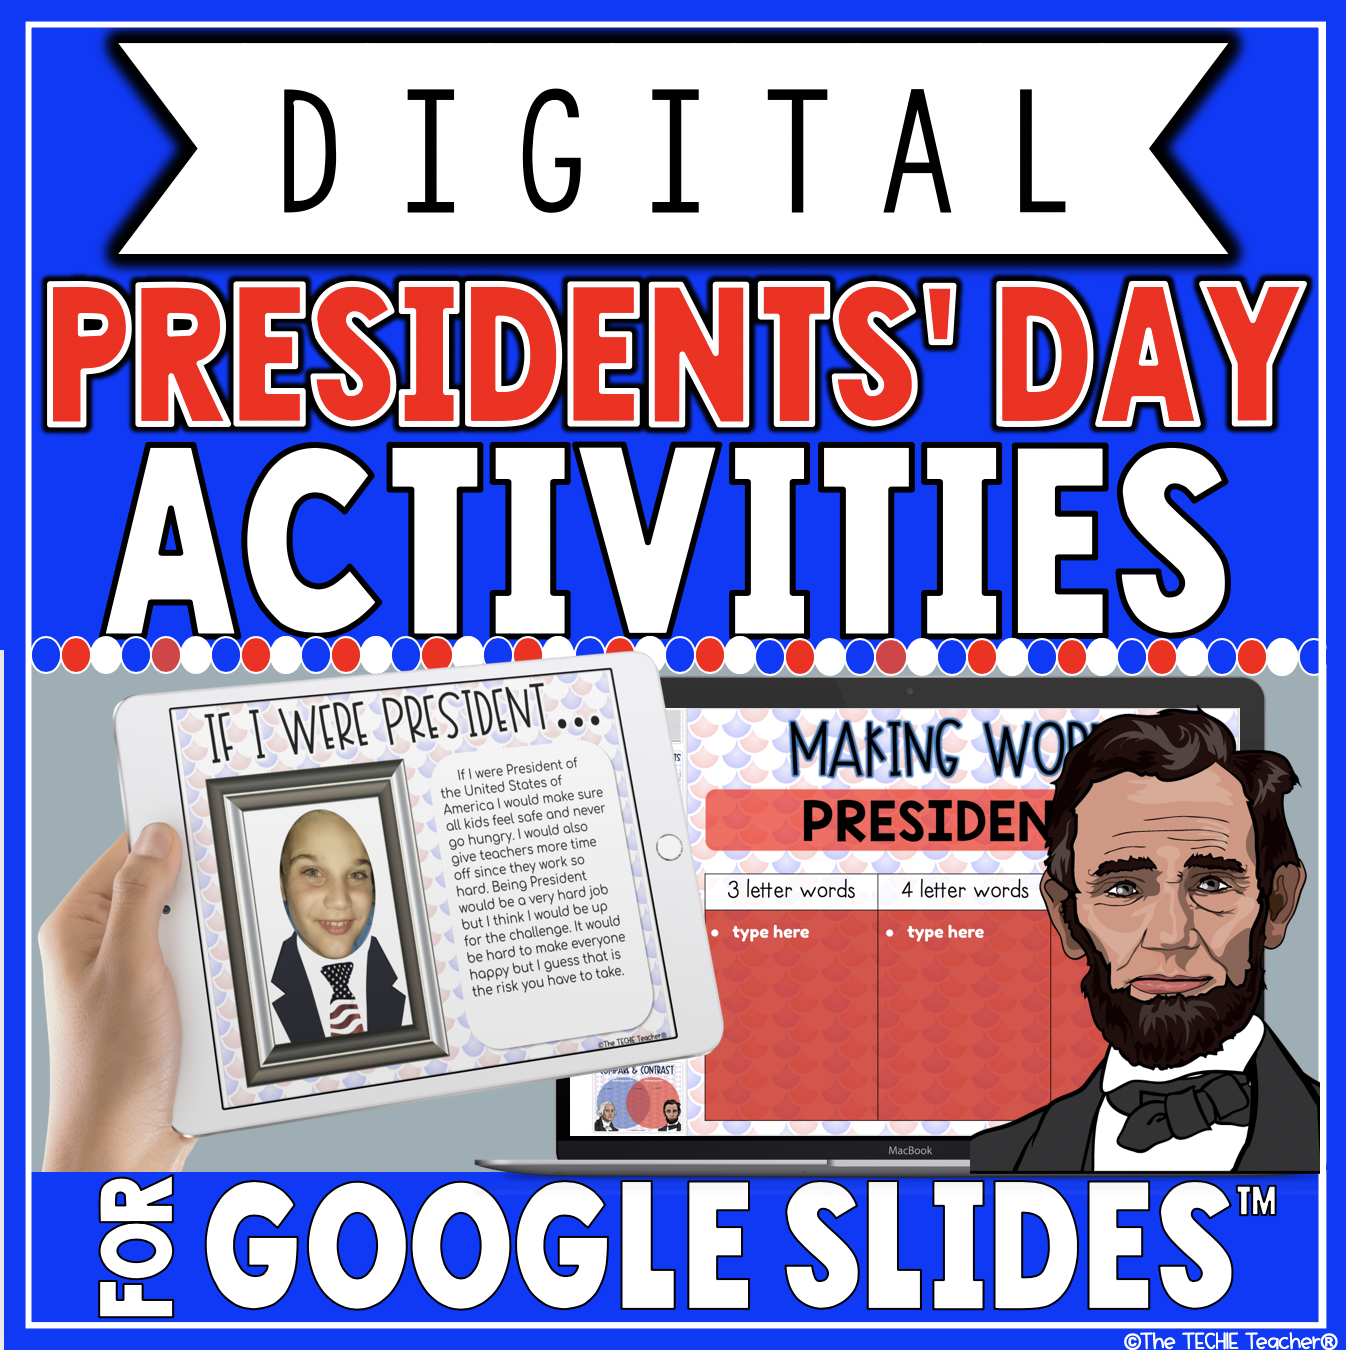 Digital Presidents' Day Activities for Google Slides